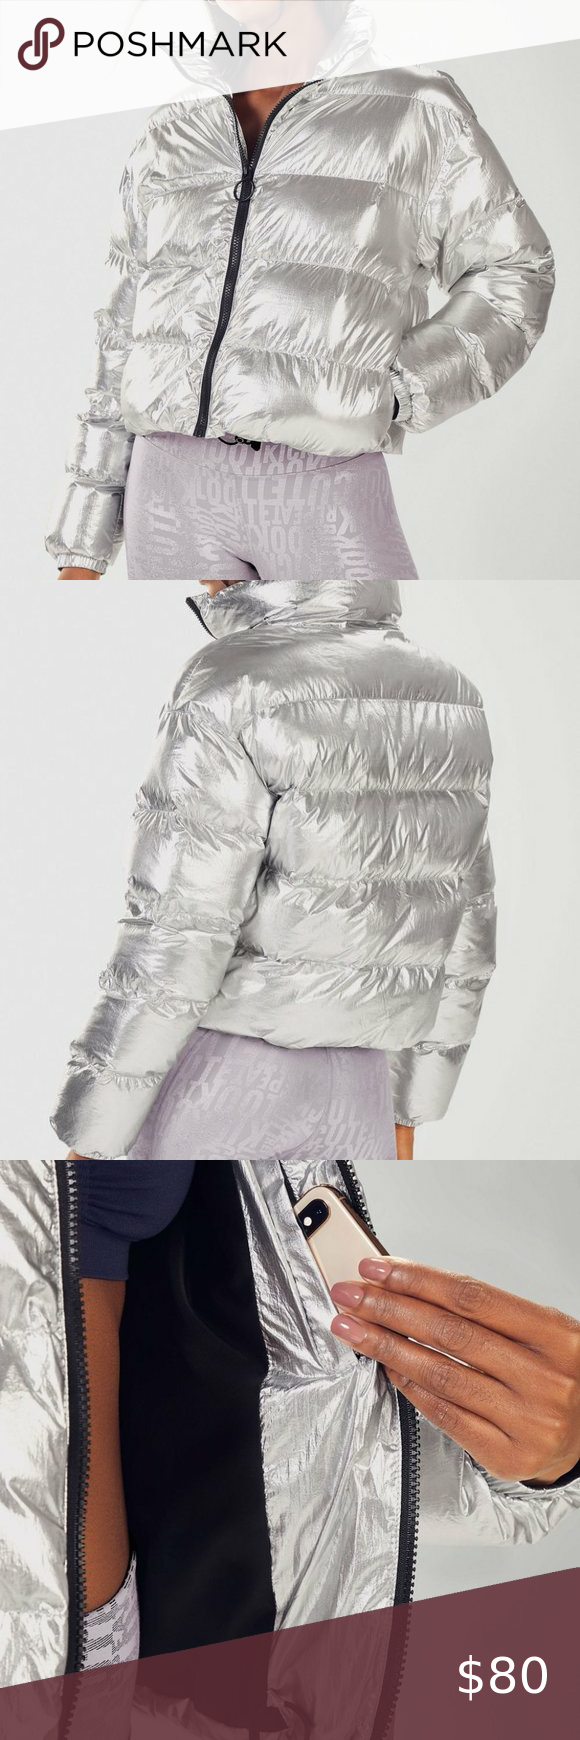 Fabletics Wander Puffer Jacket Fabletics Wander Puffer Jacket In Silver Shine Breathable Coverage With Adjustable Hem S Clothes Design Fashion Design Fashion [ 1740 x 580 Pixel ]